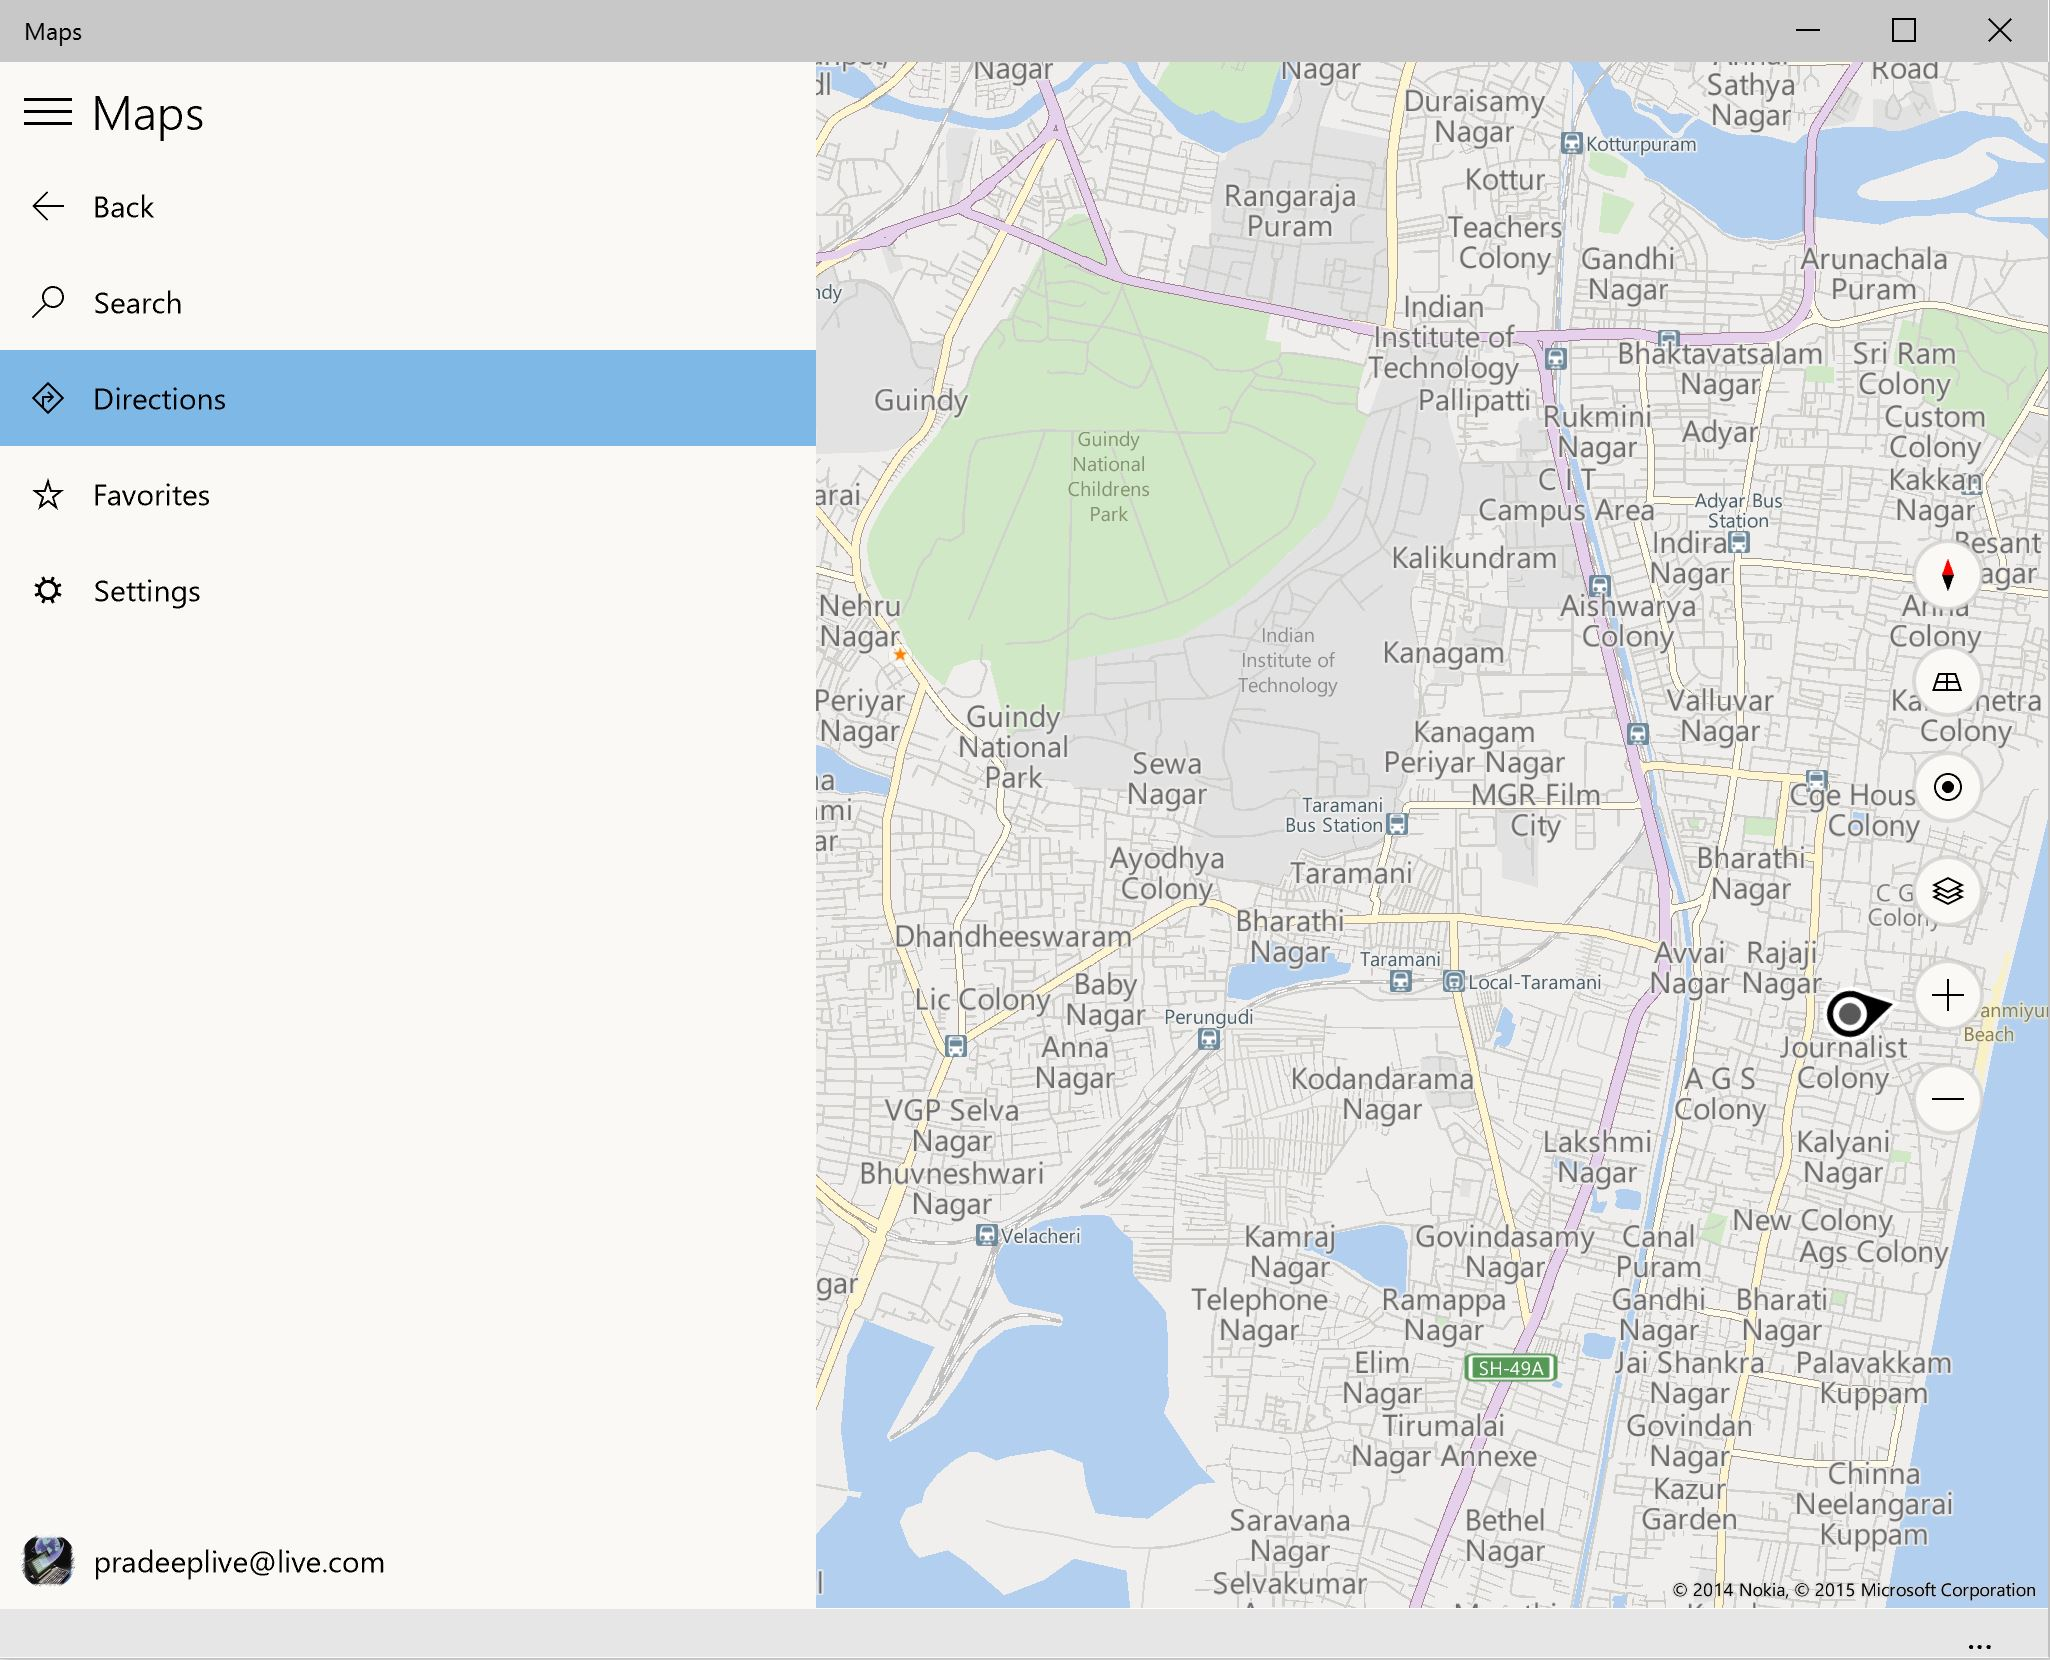 check out the revamped maps app in windows 10 build 9926 mspoweruser